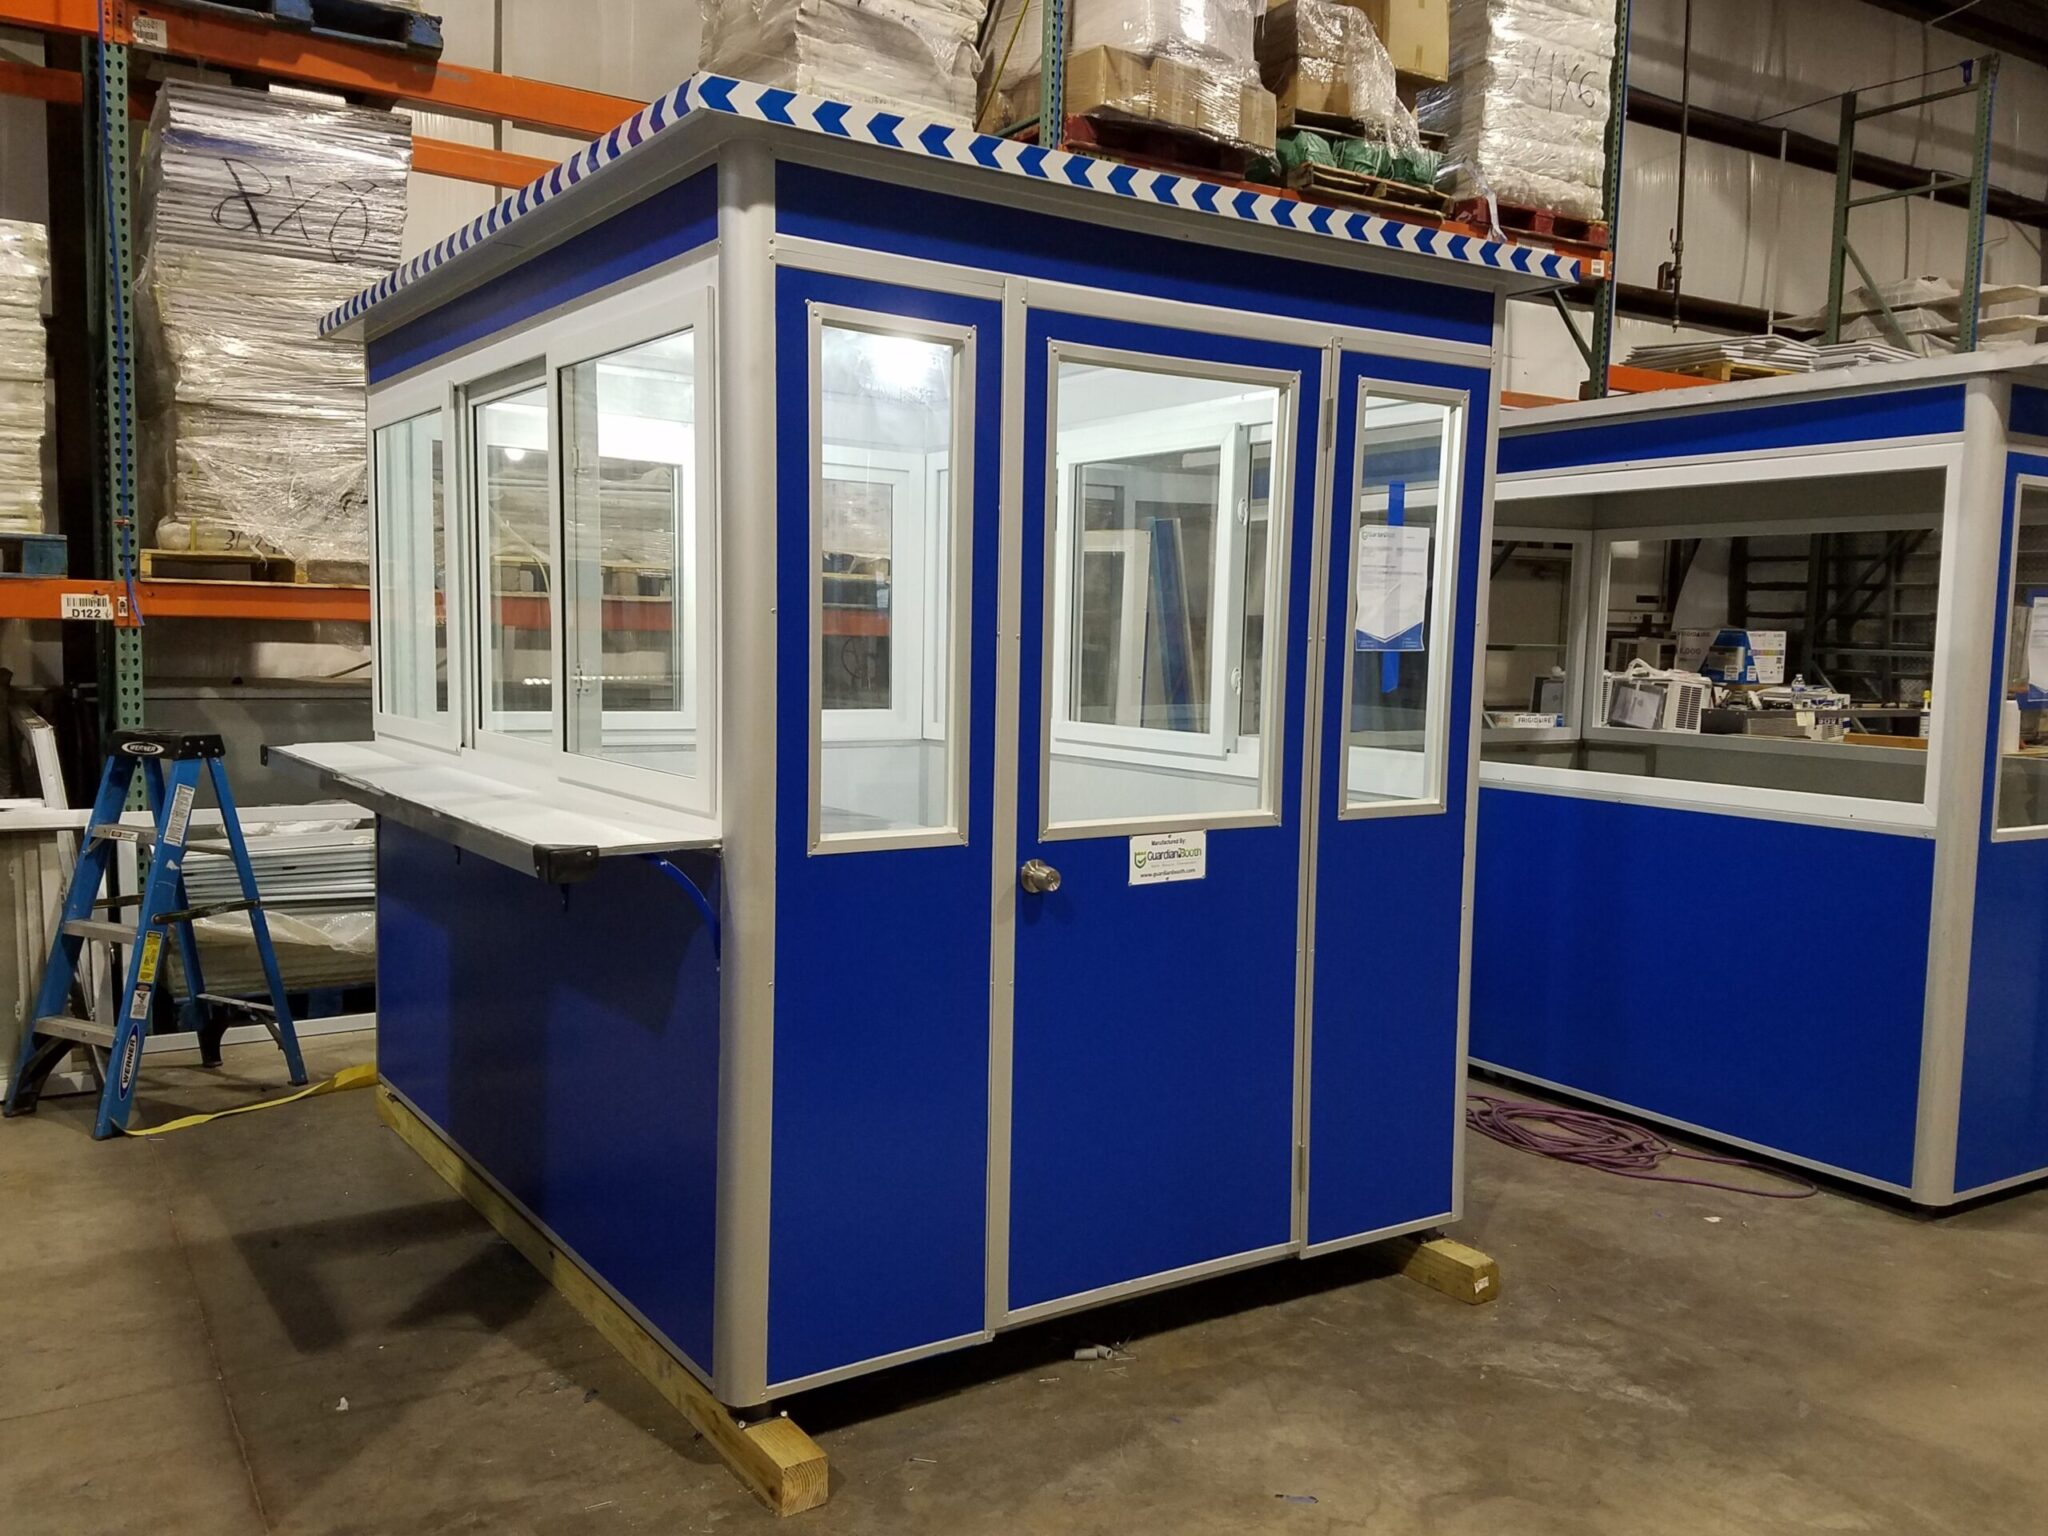 6x8 Ticket Booth in Binghamton, NY with Exterior Ticket Counter, Sliding Windows, Swing Door, and Exterior Electrical Disconnect Switch